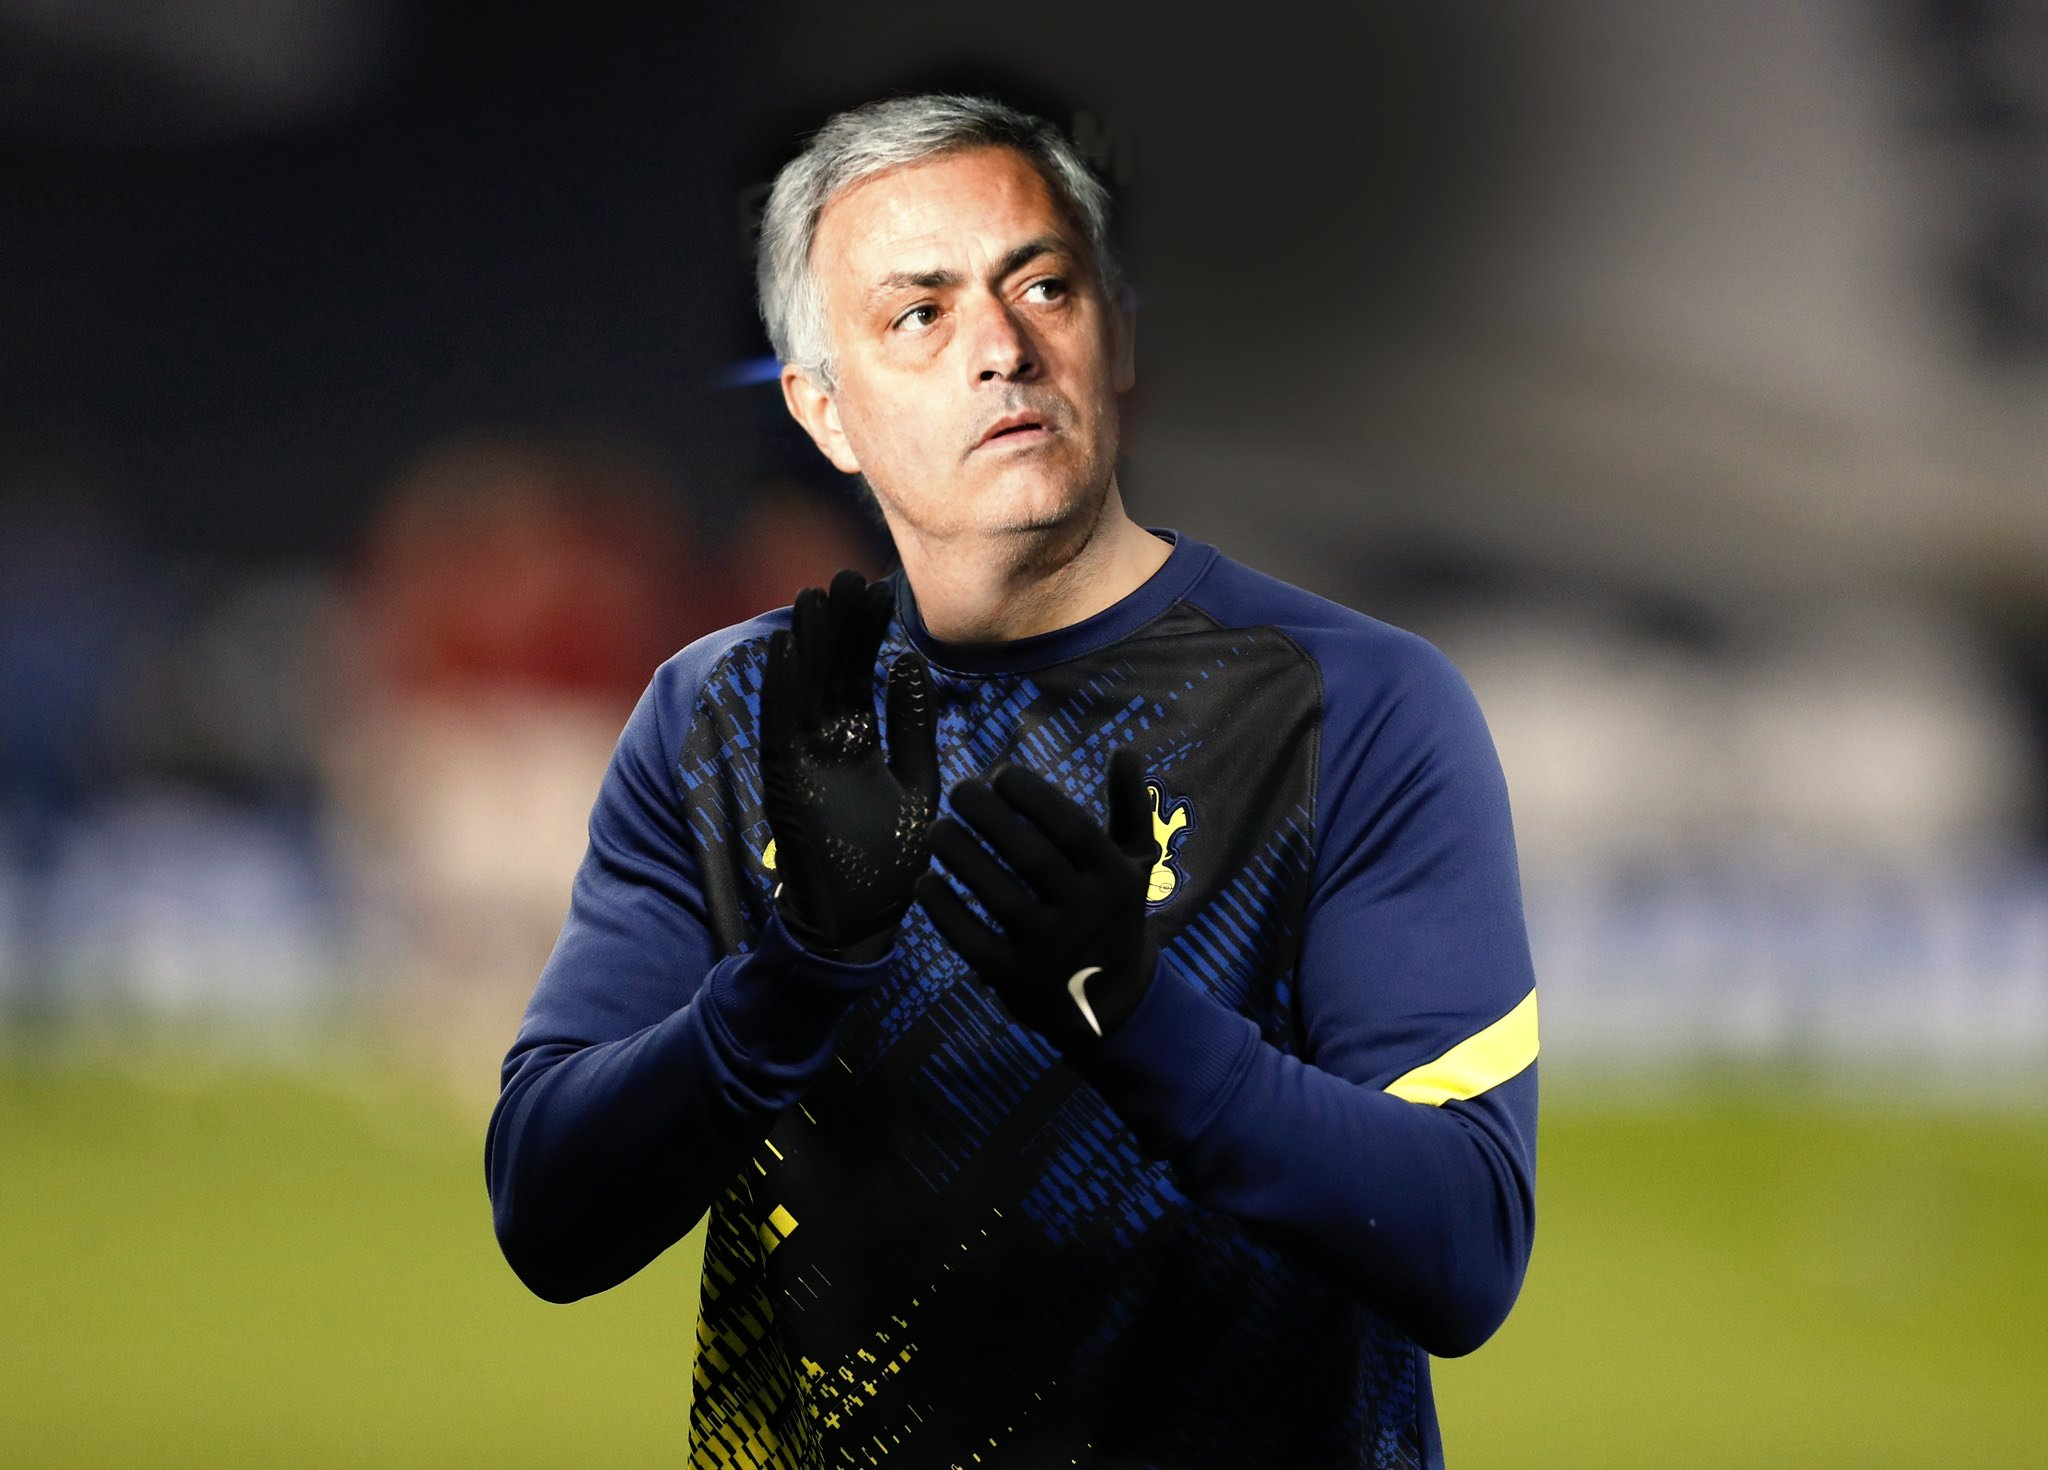 MOURINHO FAVOURITE TO LOSE HIS JOB